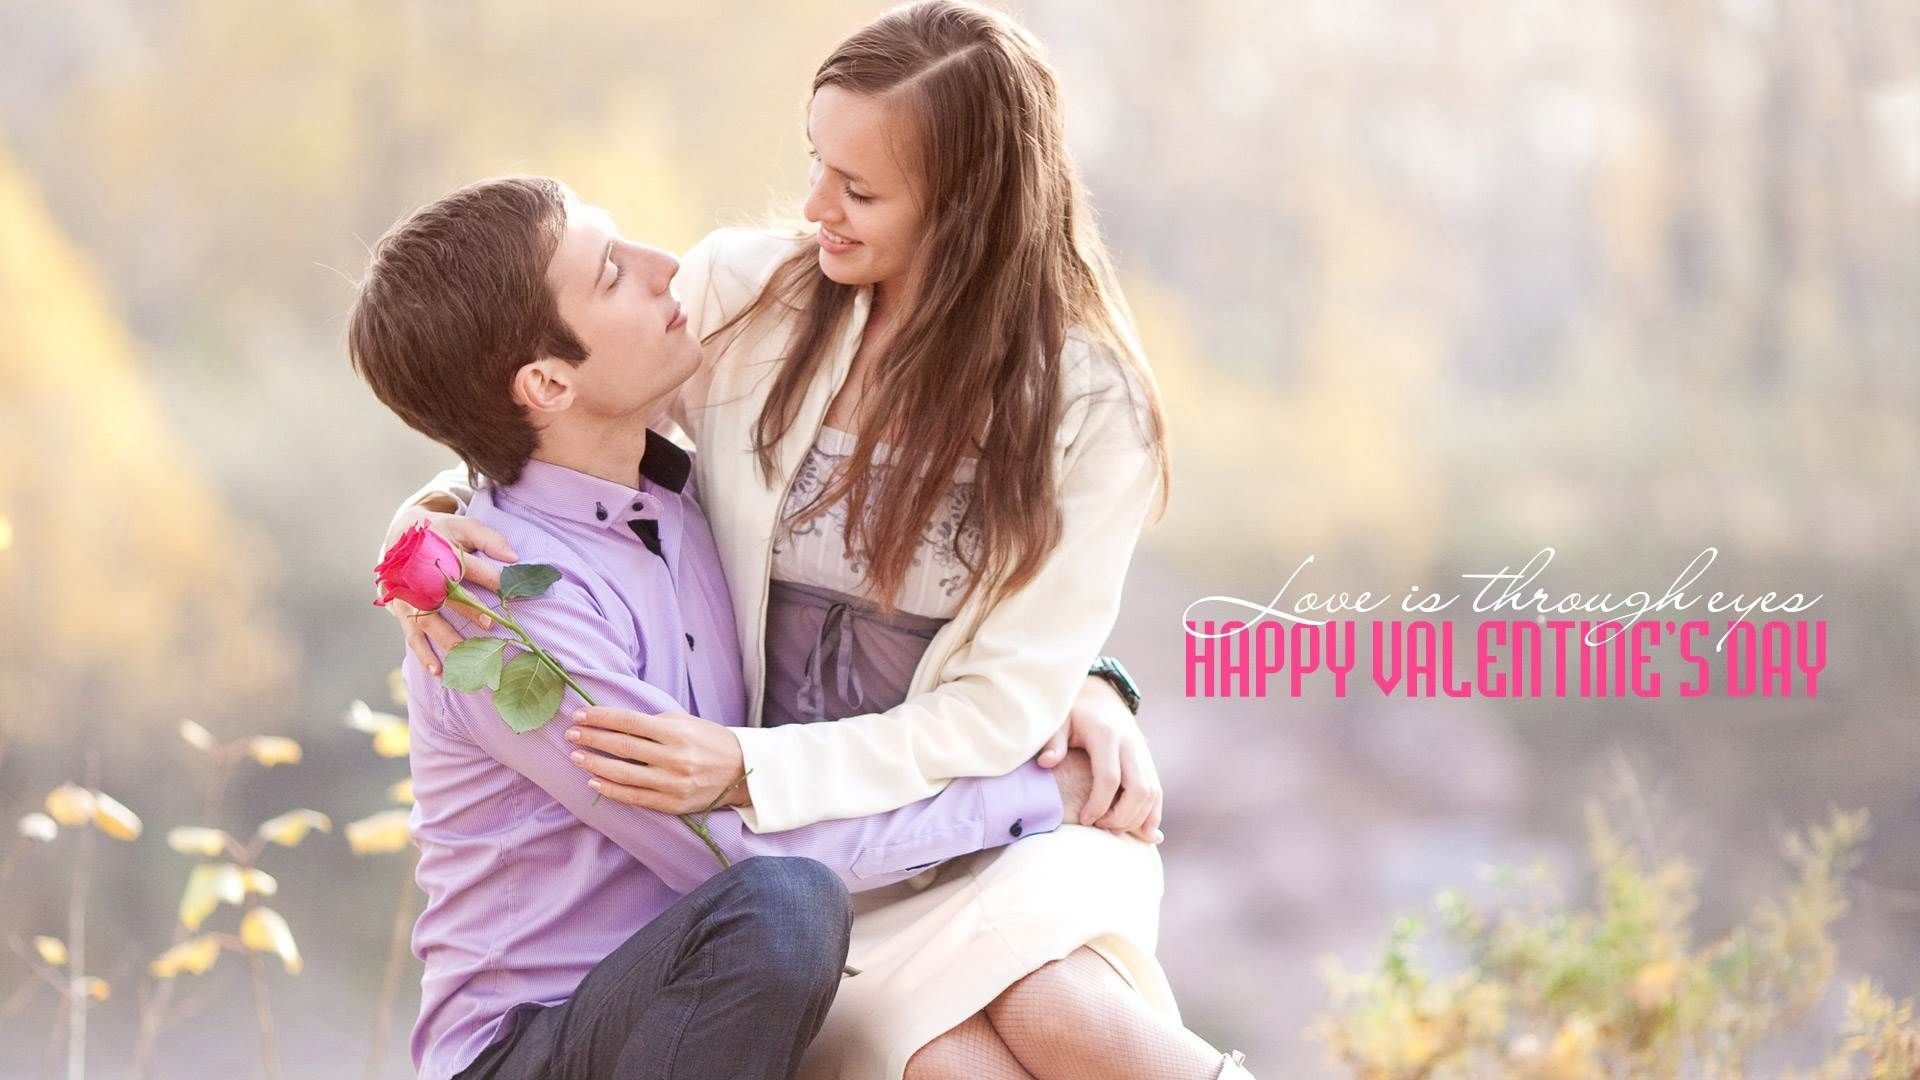 romantic couple wallpapers (72+ background pictures)